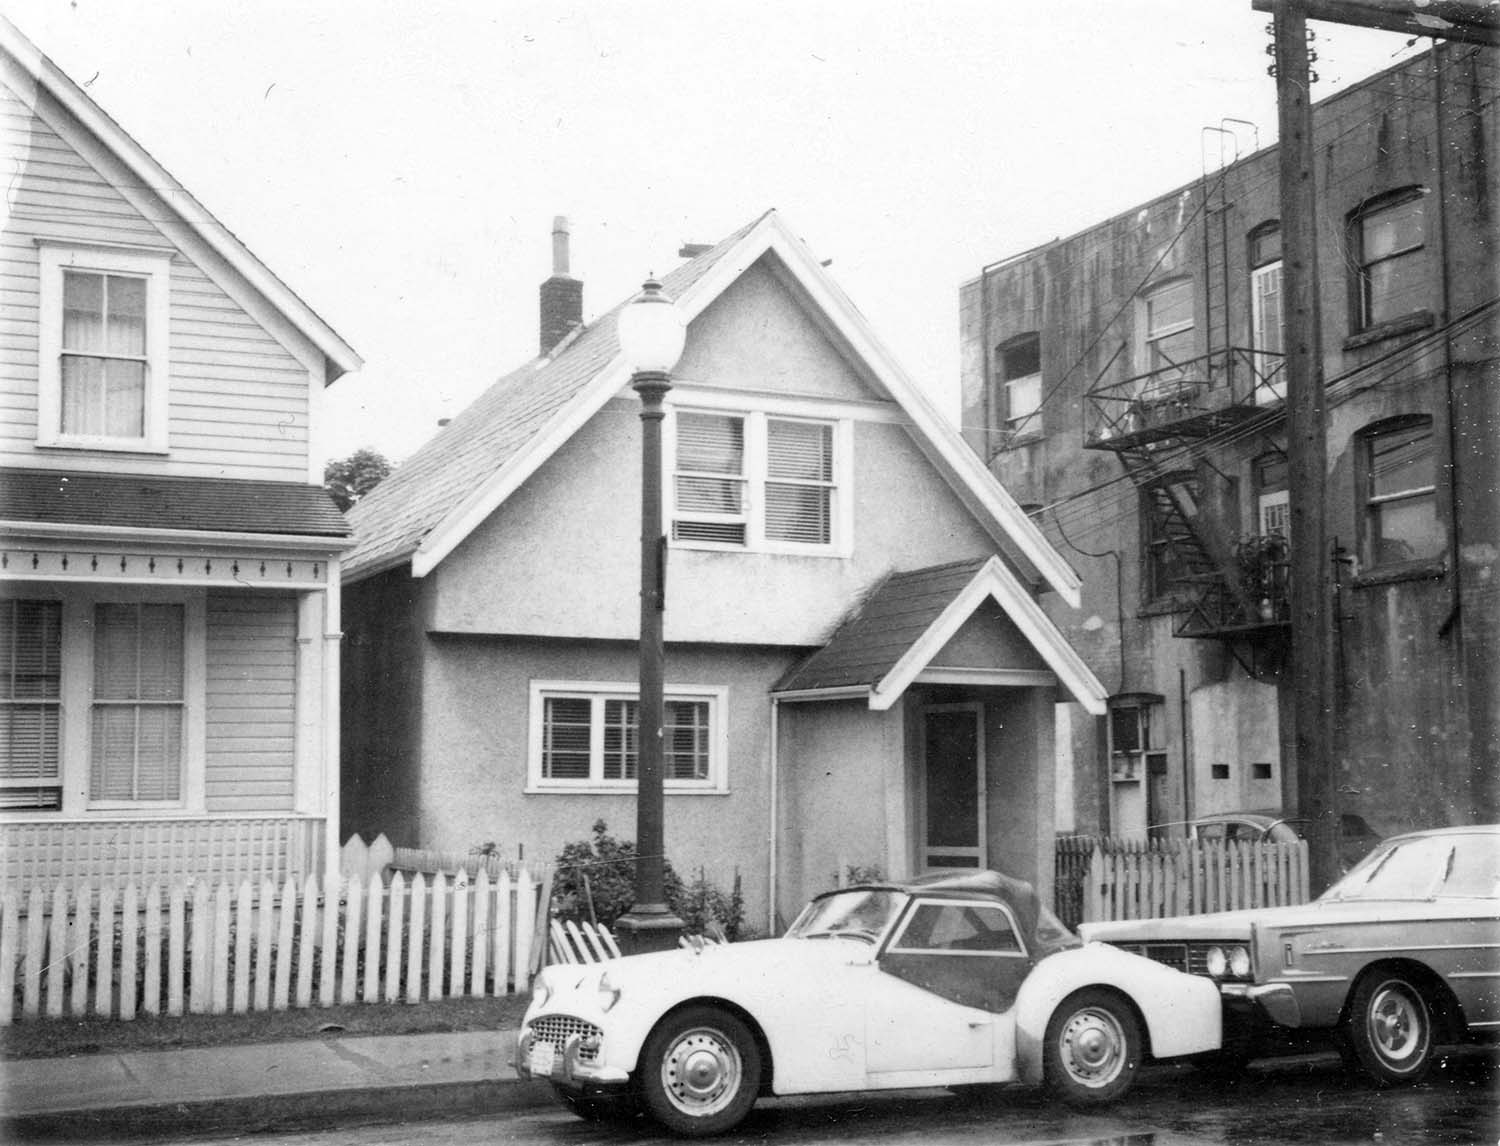 218 Union Street [front], 1969. Photograph also shows part of house at 224 Union Street and the back of the building at 800 - 822 Main Street. Reference code COV-S168-: CVA 203-36